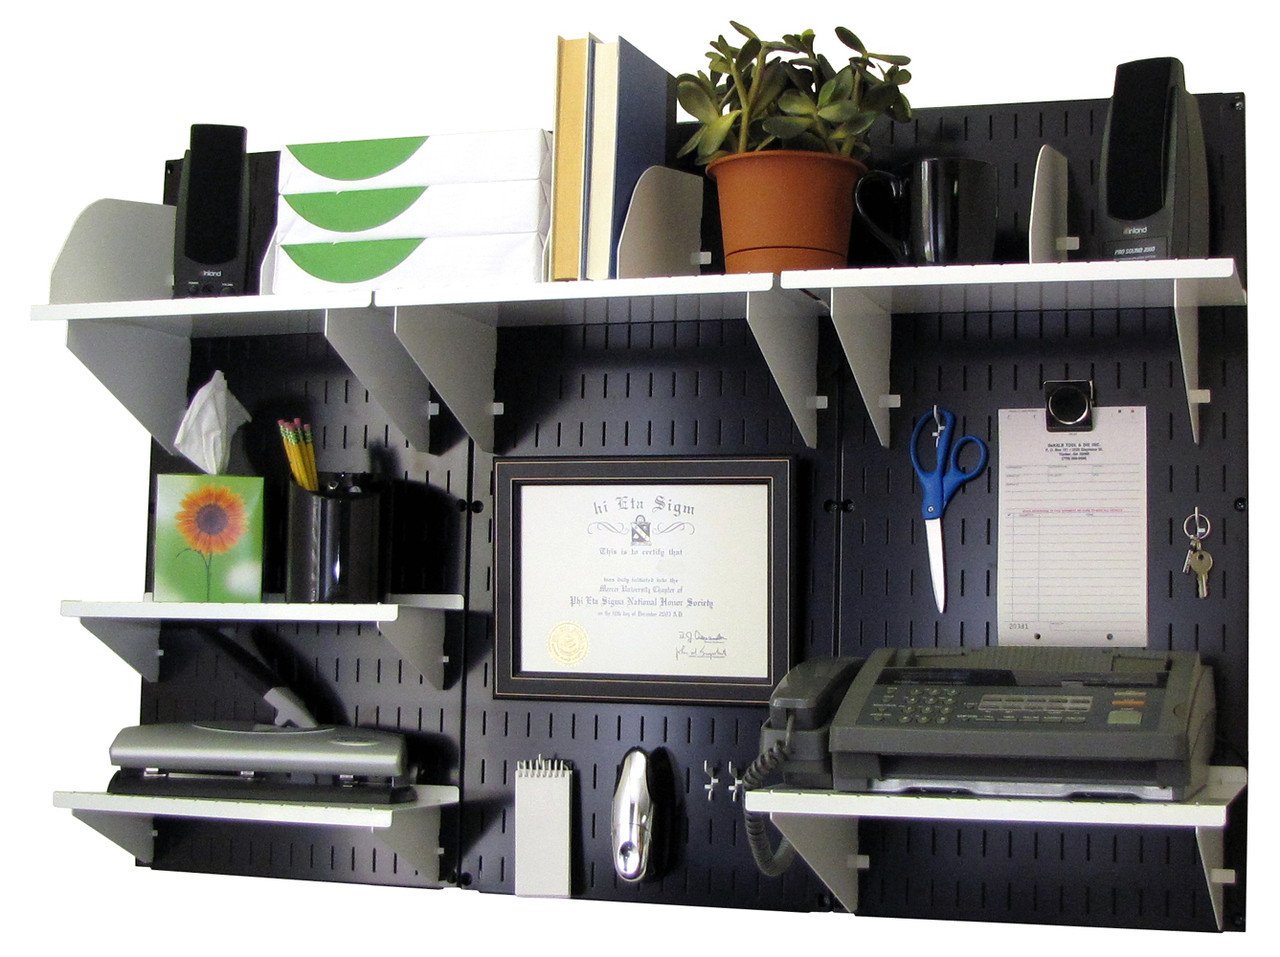 organizer organizers mounted and accessories sto wall storage for systems fresh ideas organization system office home